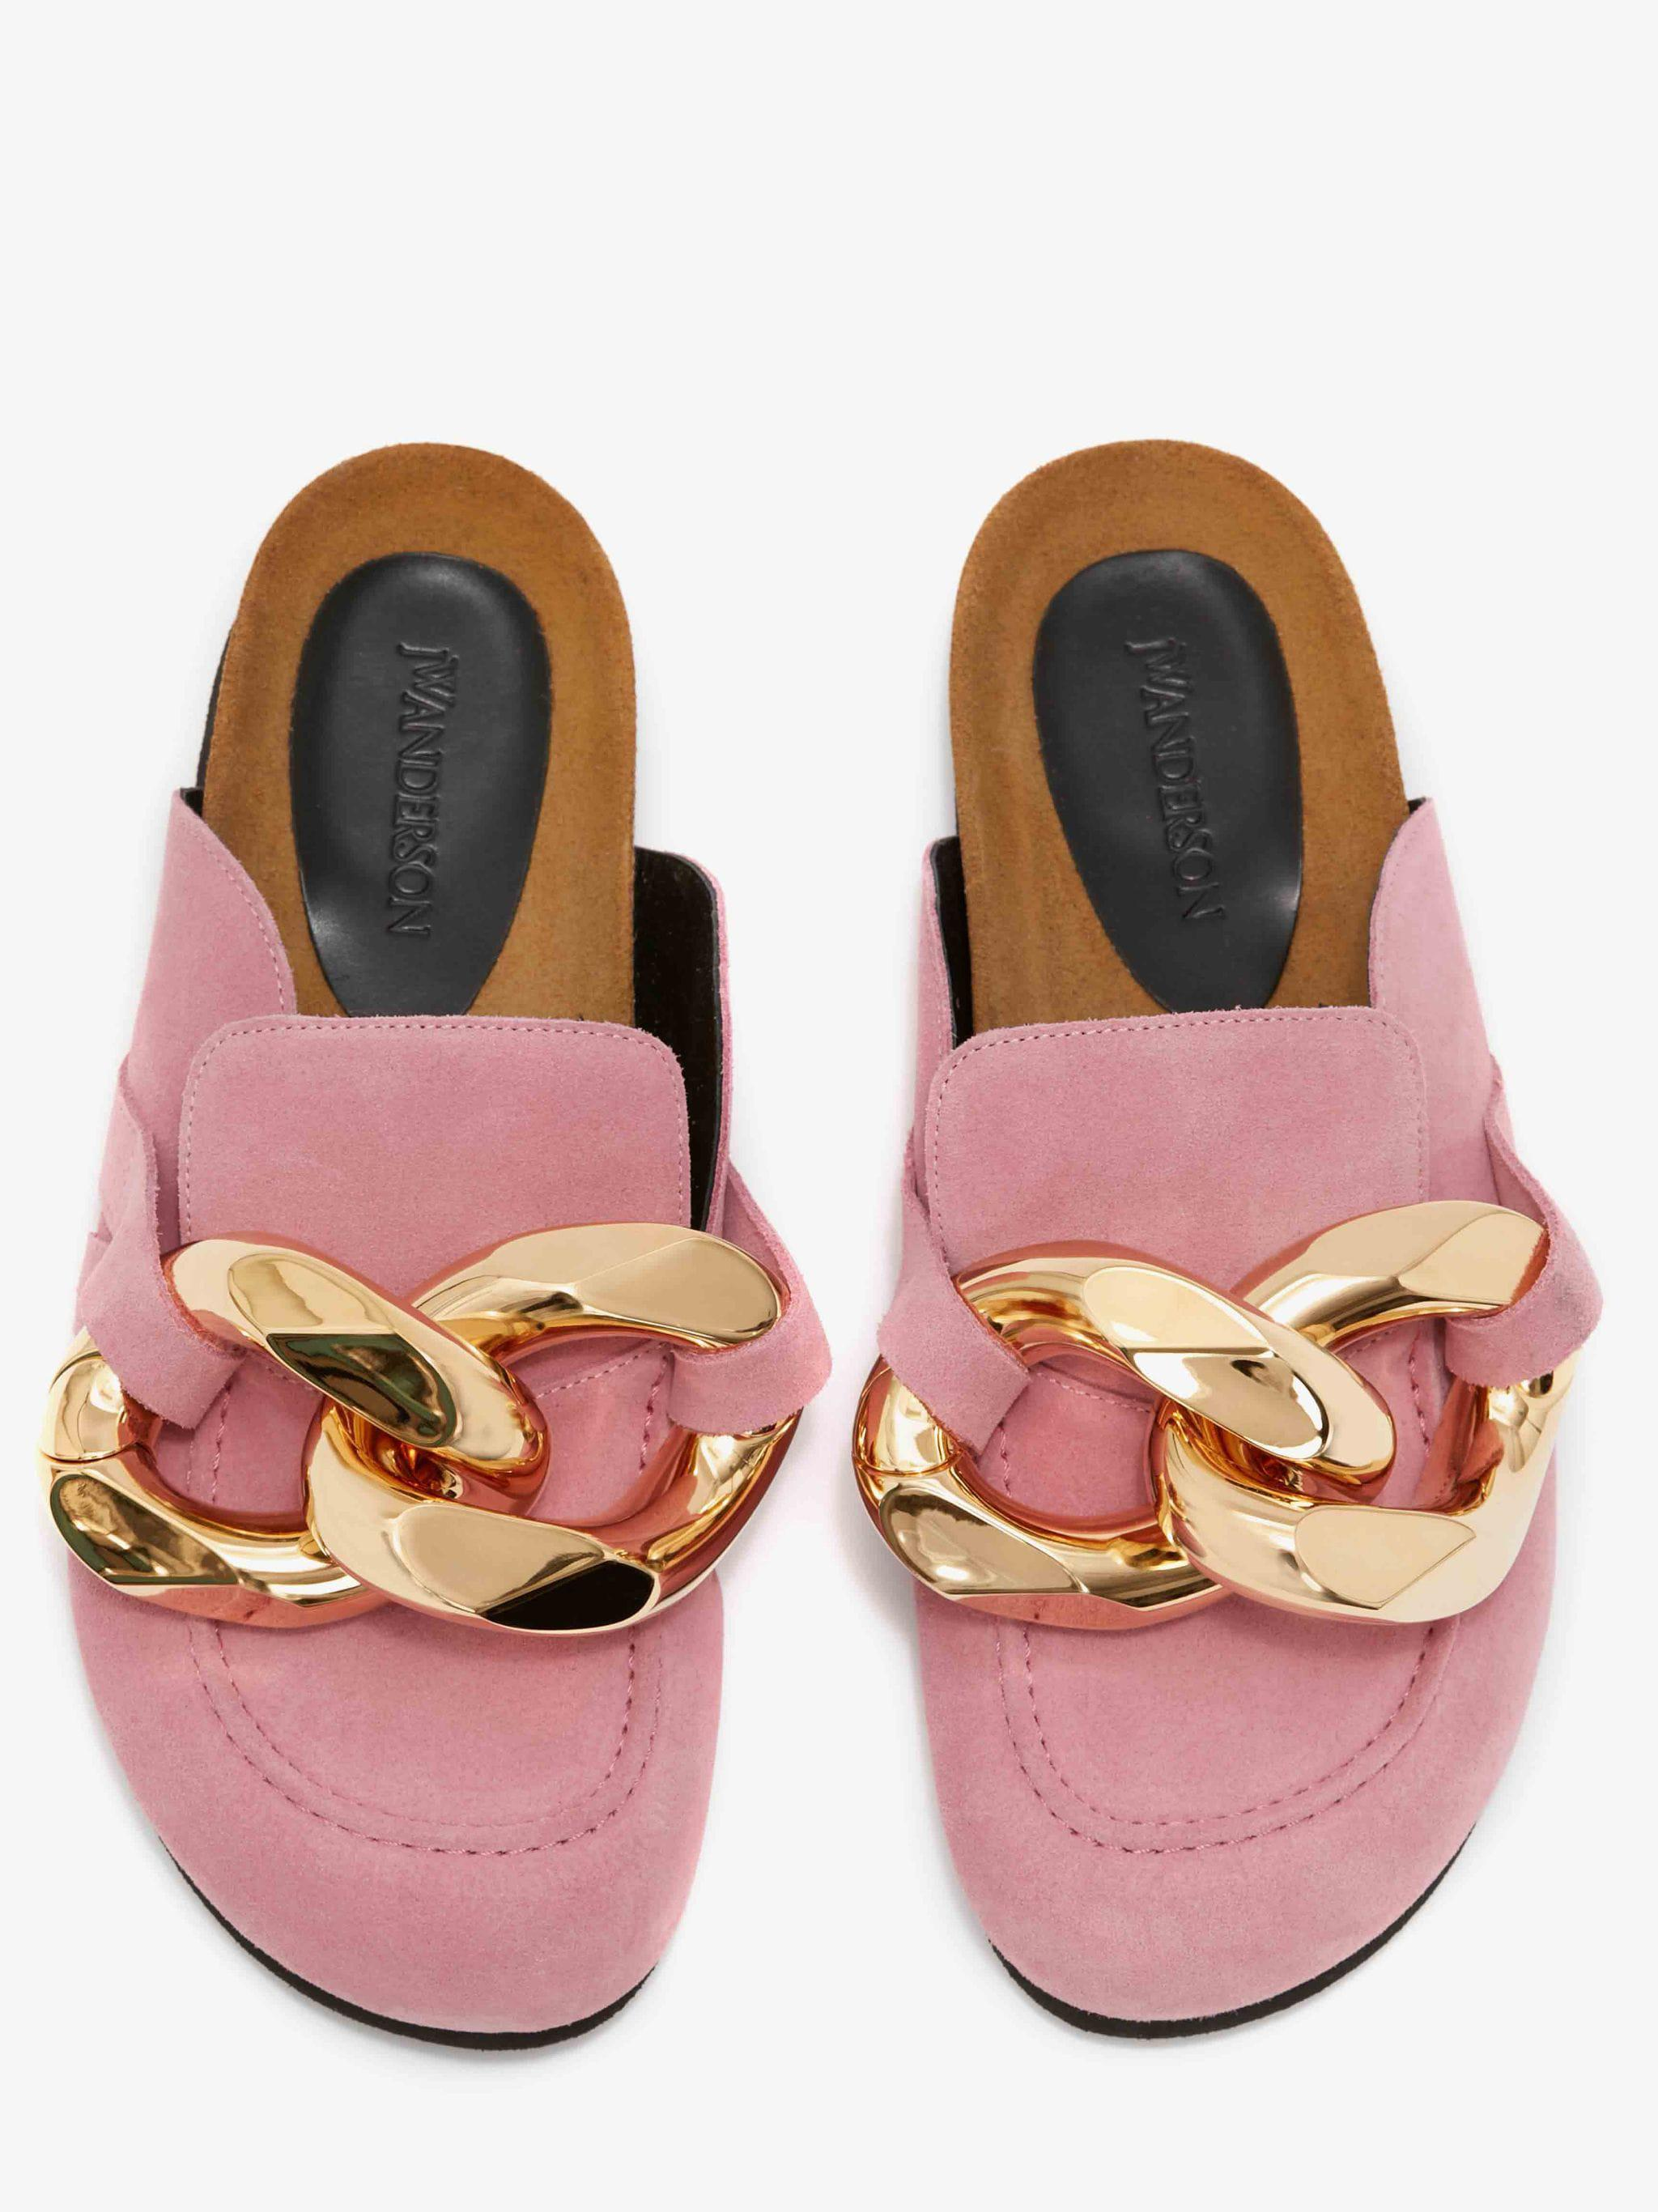 WOMEN'S CHAIN LOAFER MULES 3